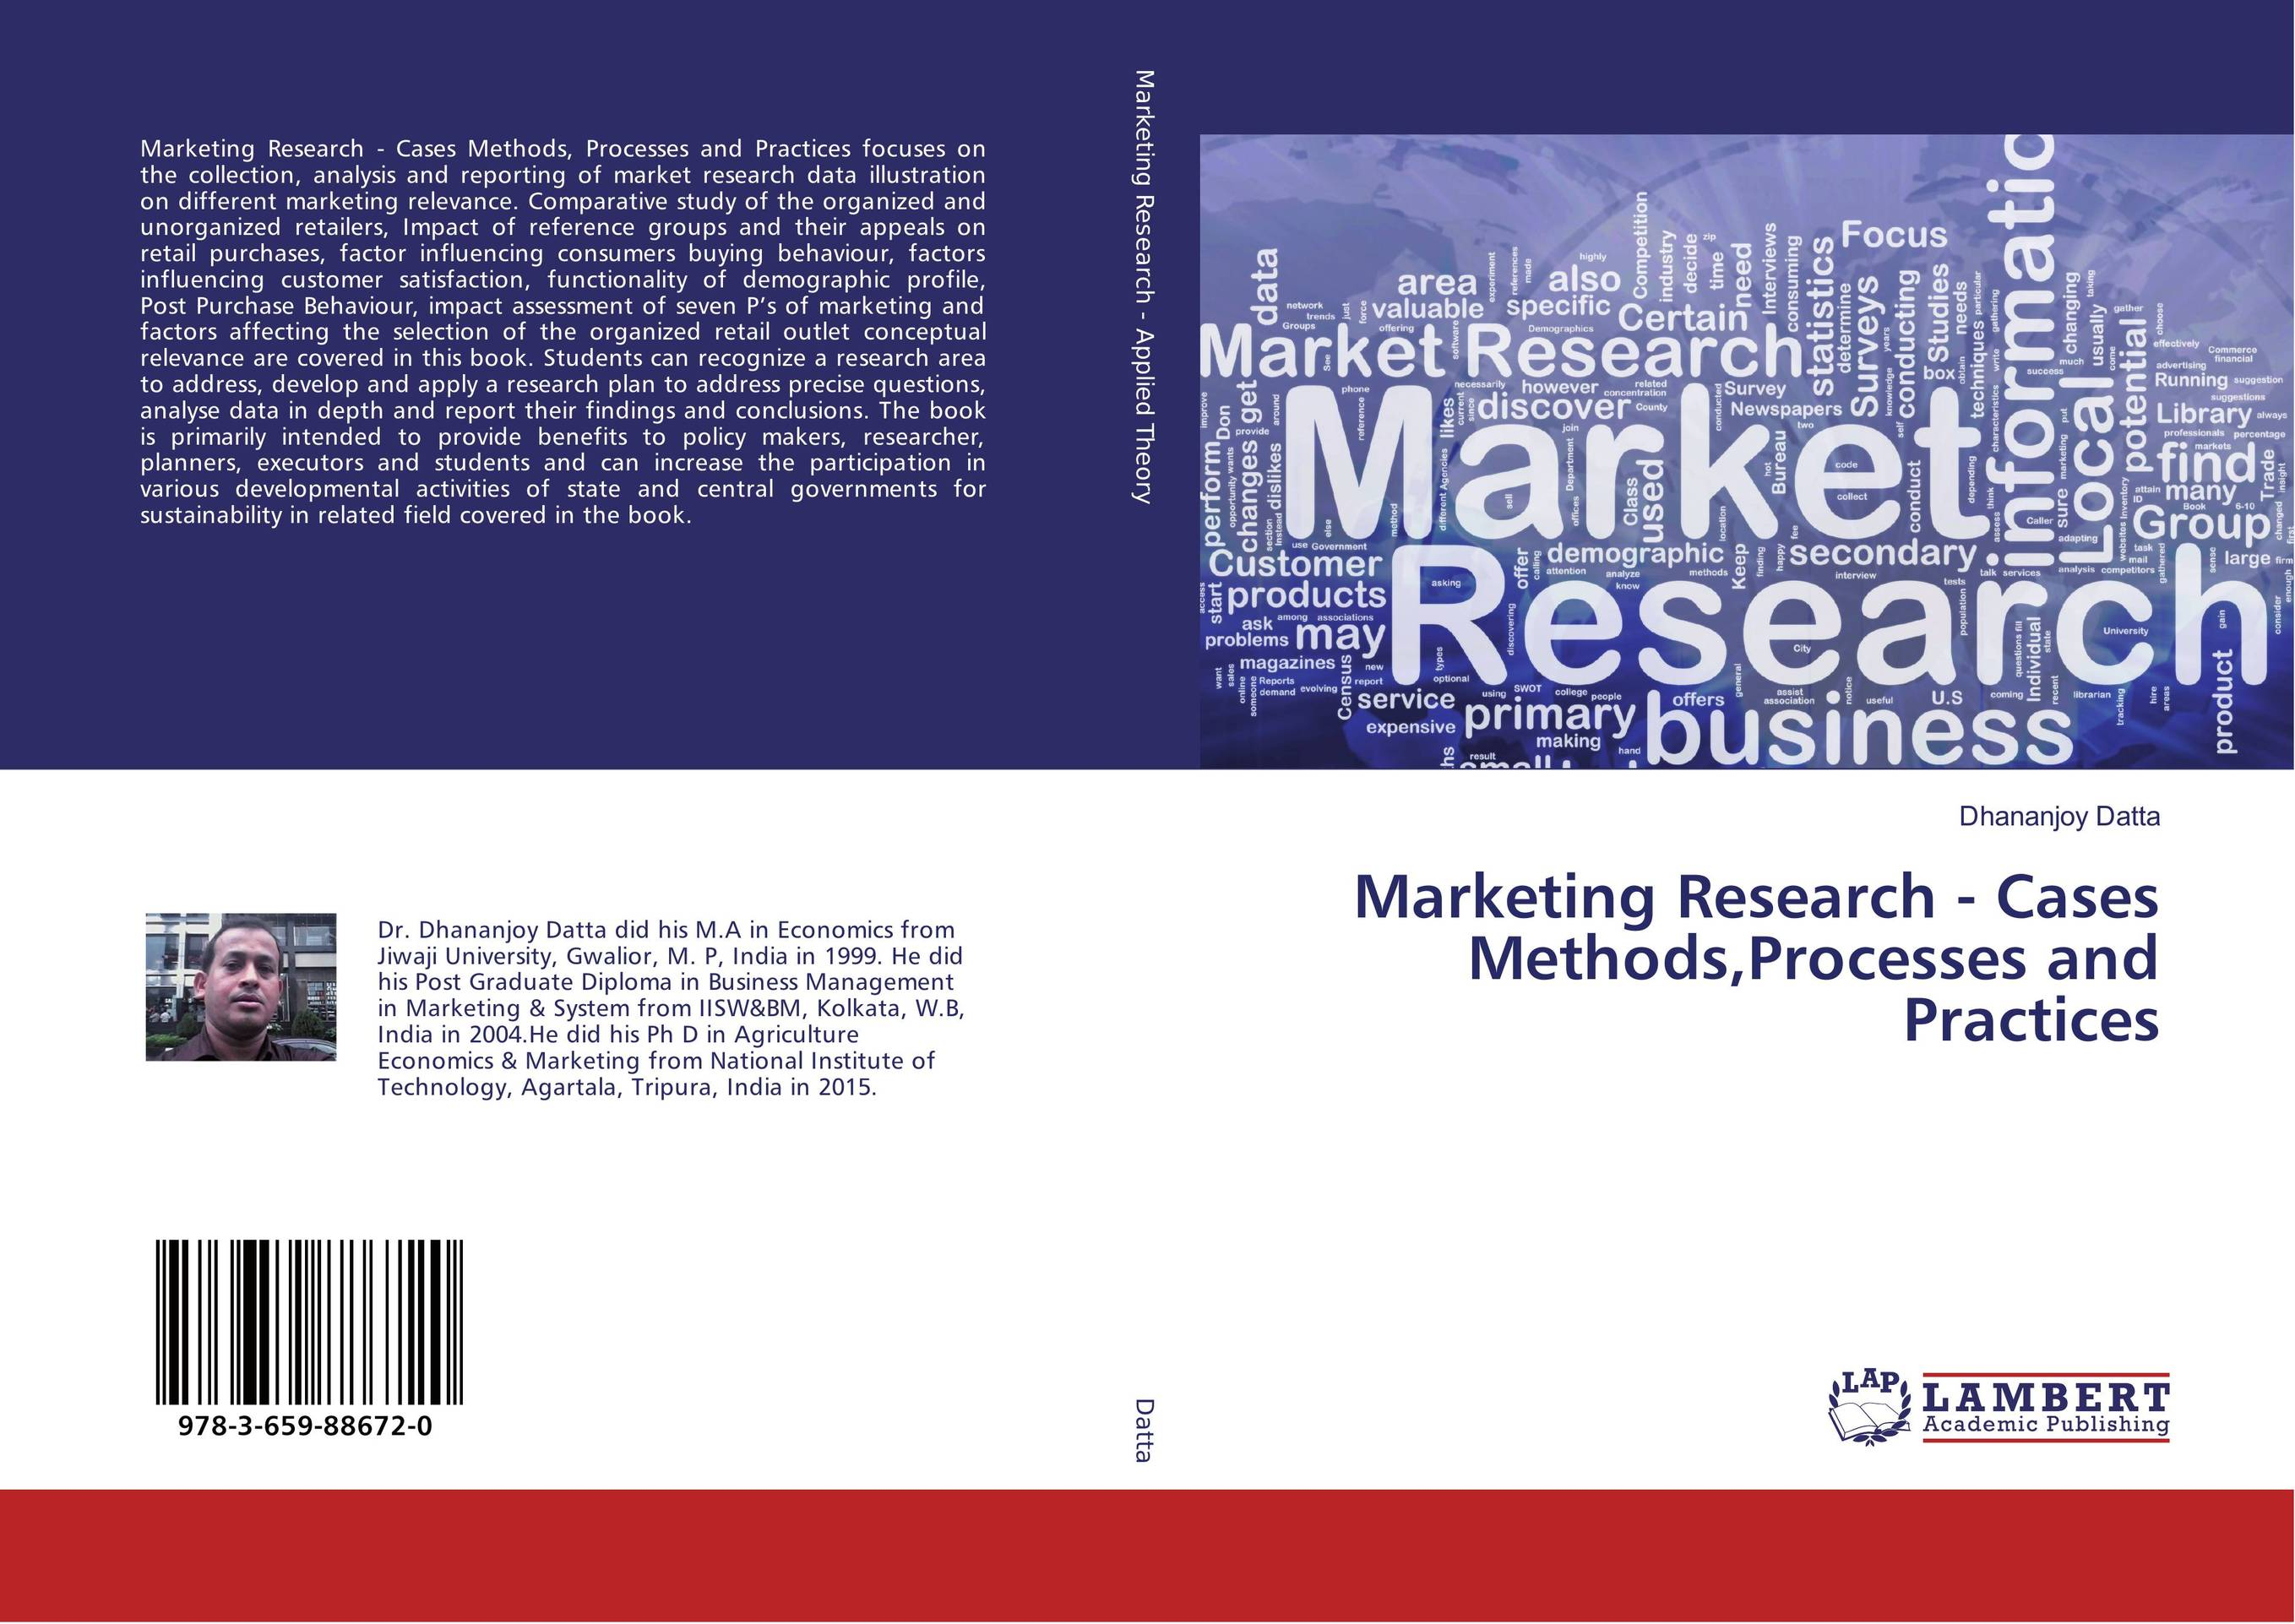 Marketing Research - Cases Methods,Processes and Practices belousov a security features of banknotes and other documents methods of authentication manual денежные билеты бланки ценных бумаг и документов